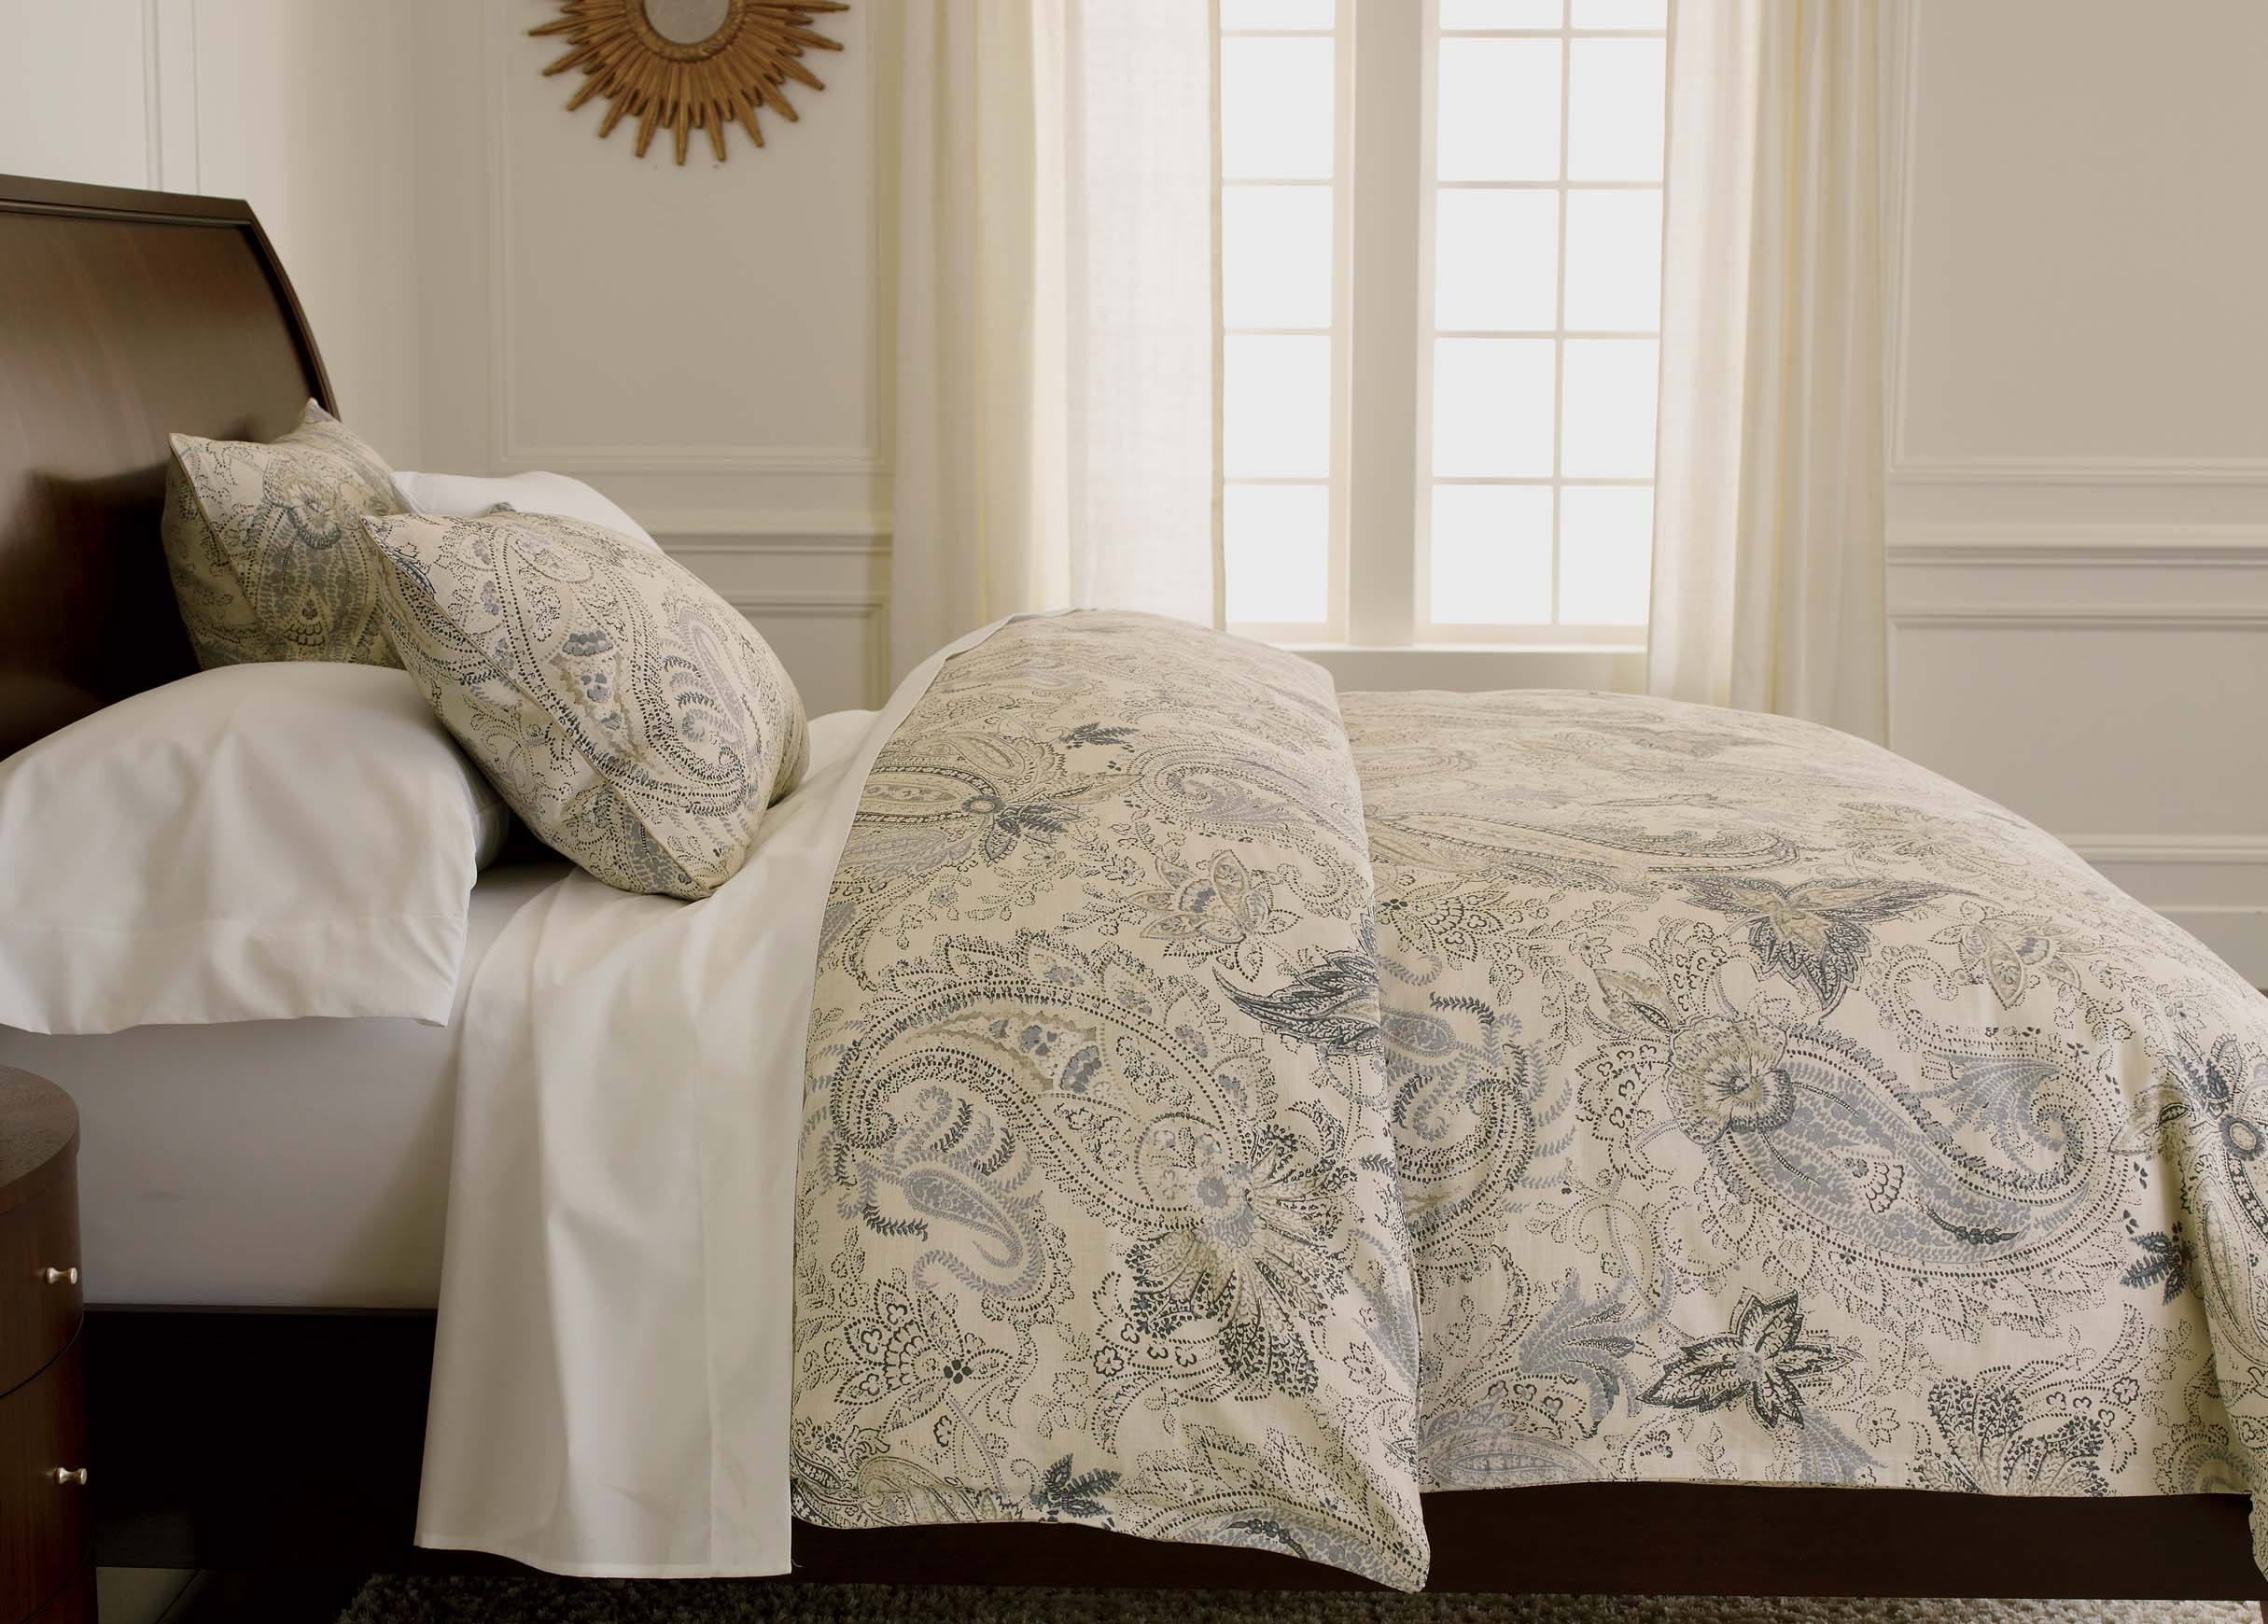 Bed Works shops are among the leading bed stores in the Sydney metro area, providing you with the finest range of bed frames, mattresses, bedroom furniture, pillows, and bedding in Sydney 4/5(12).